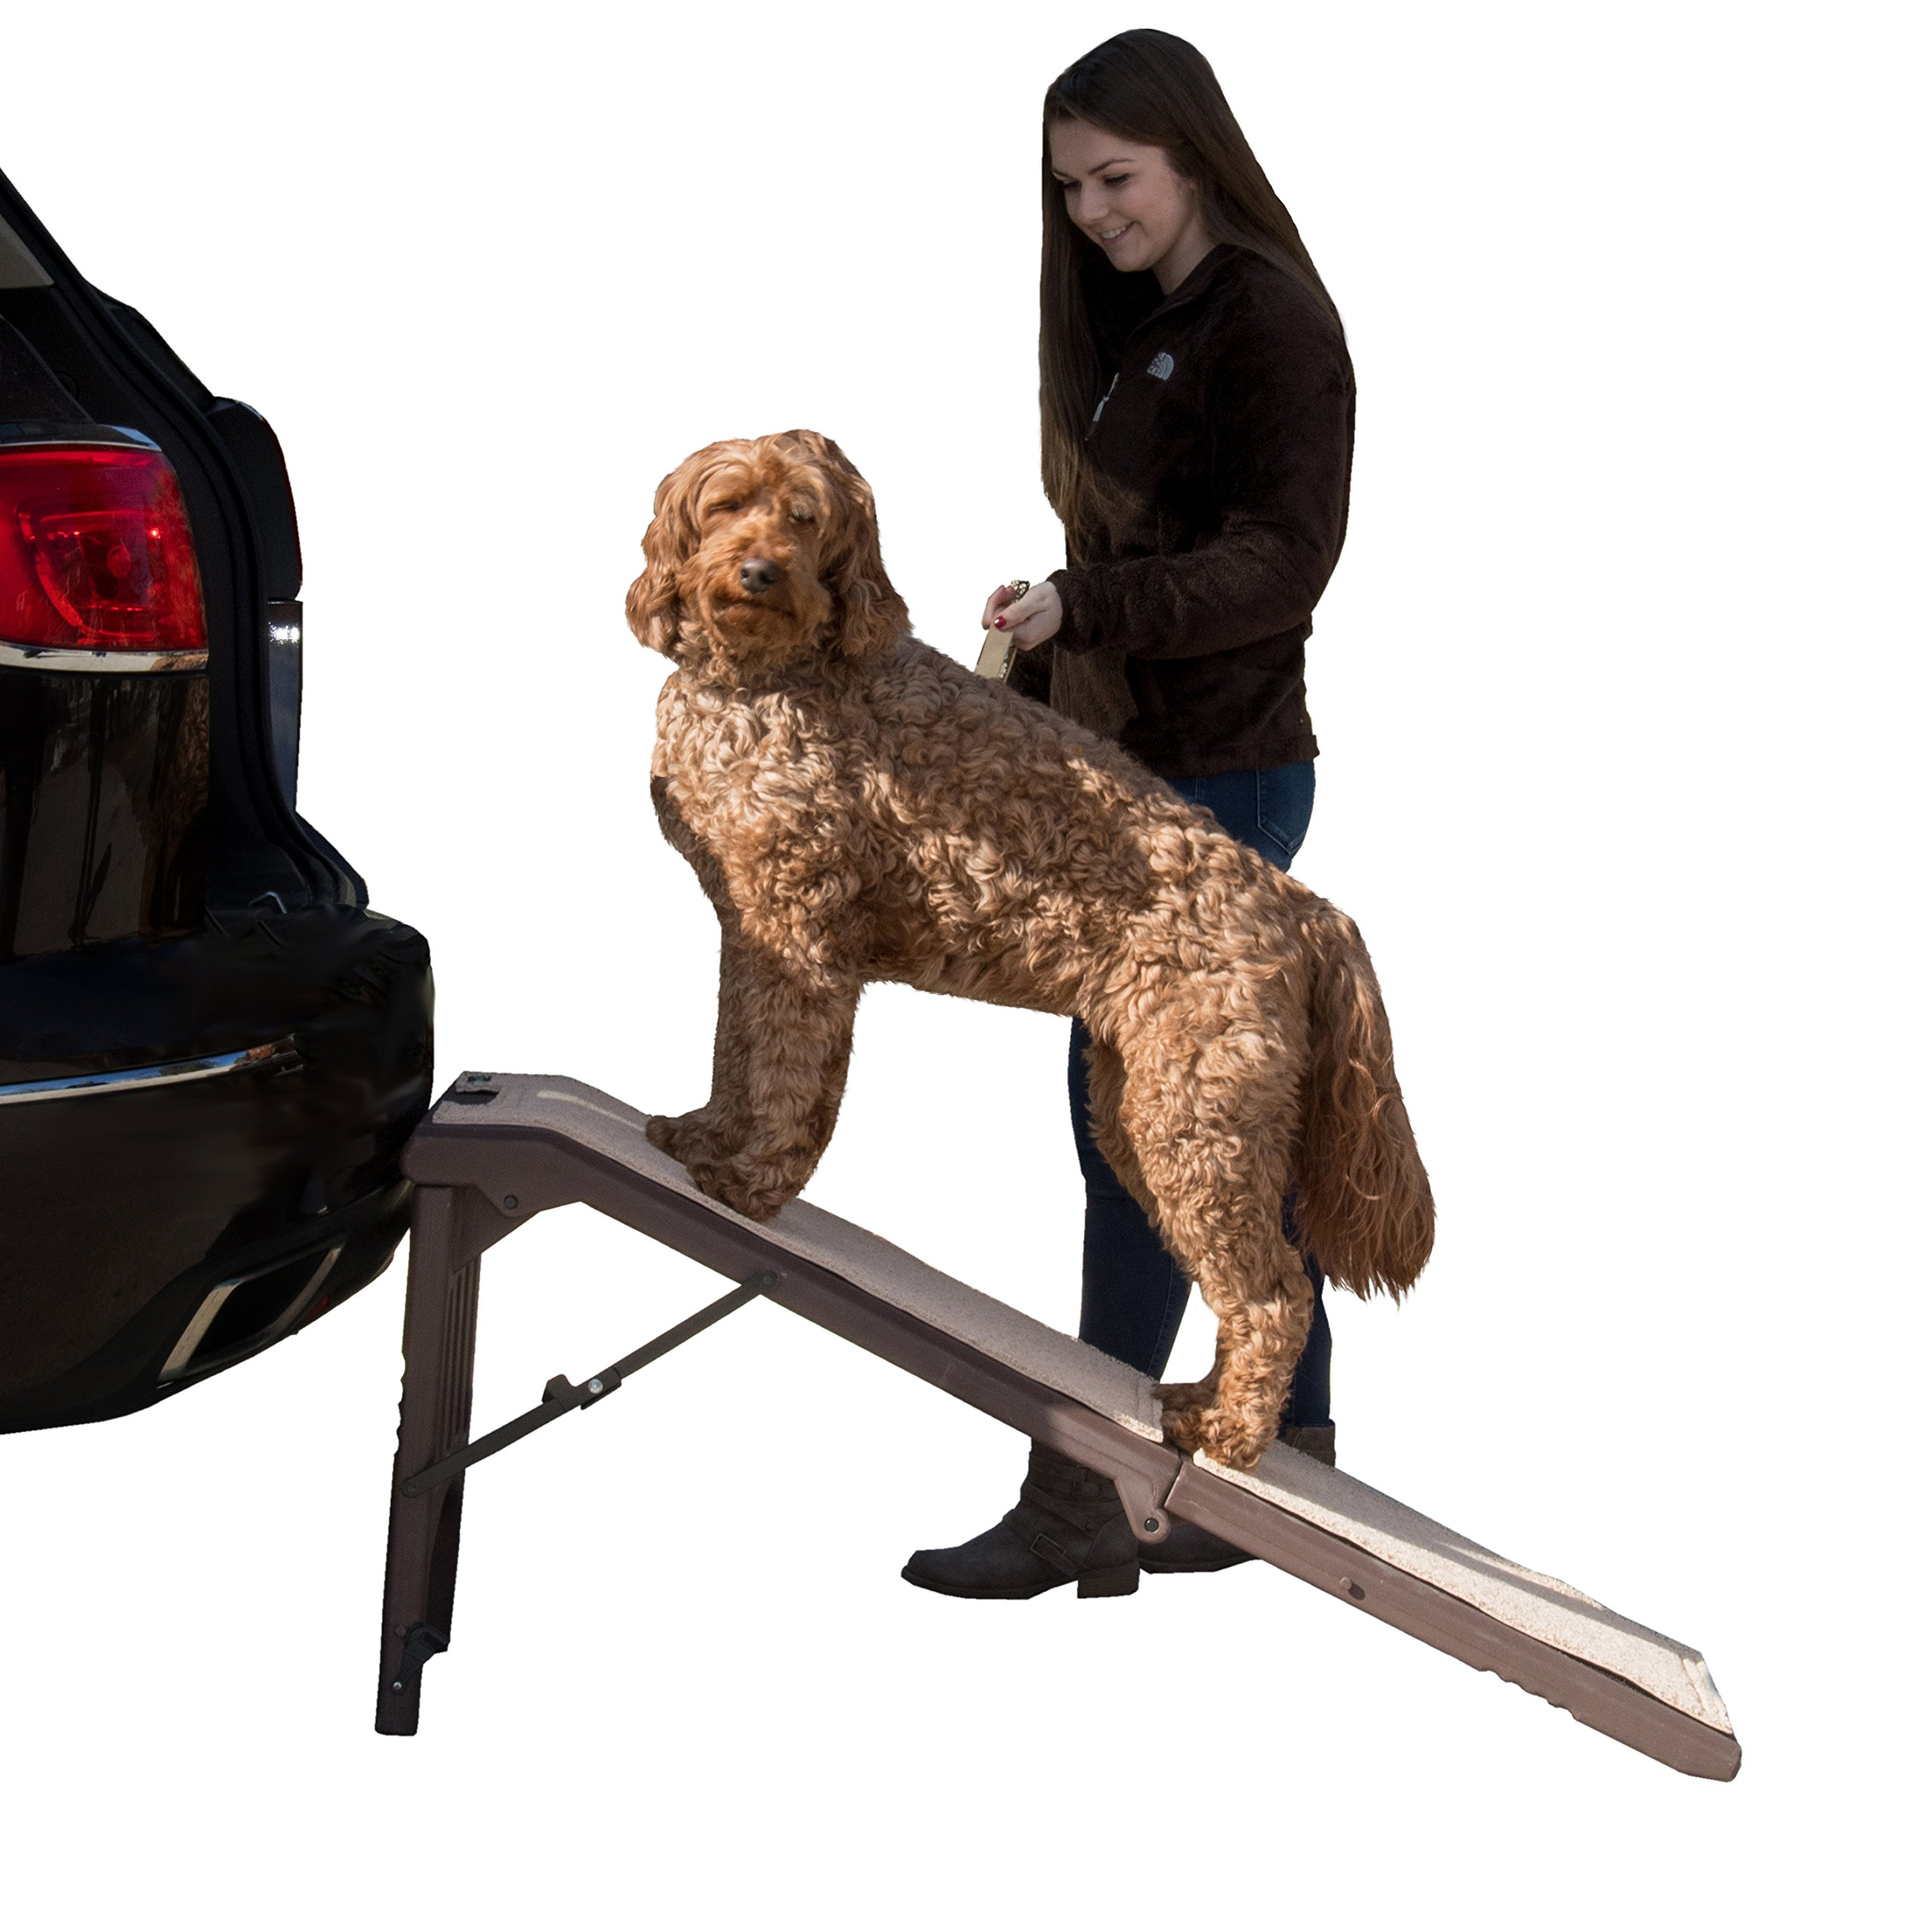 Pet Gear Free Standing Ramp for Cats and Dogs. Great for SUV's or use Next to your Bed. 4 Models to Choose from, Supports 200-300 lbs, Lightweight Easy-Fold Design by Pet Gear